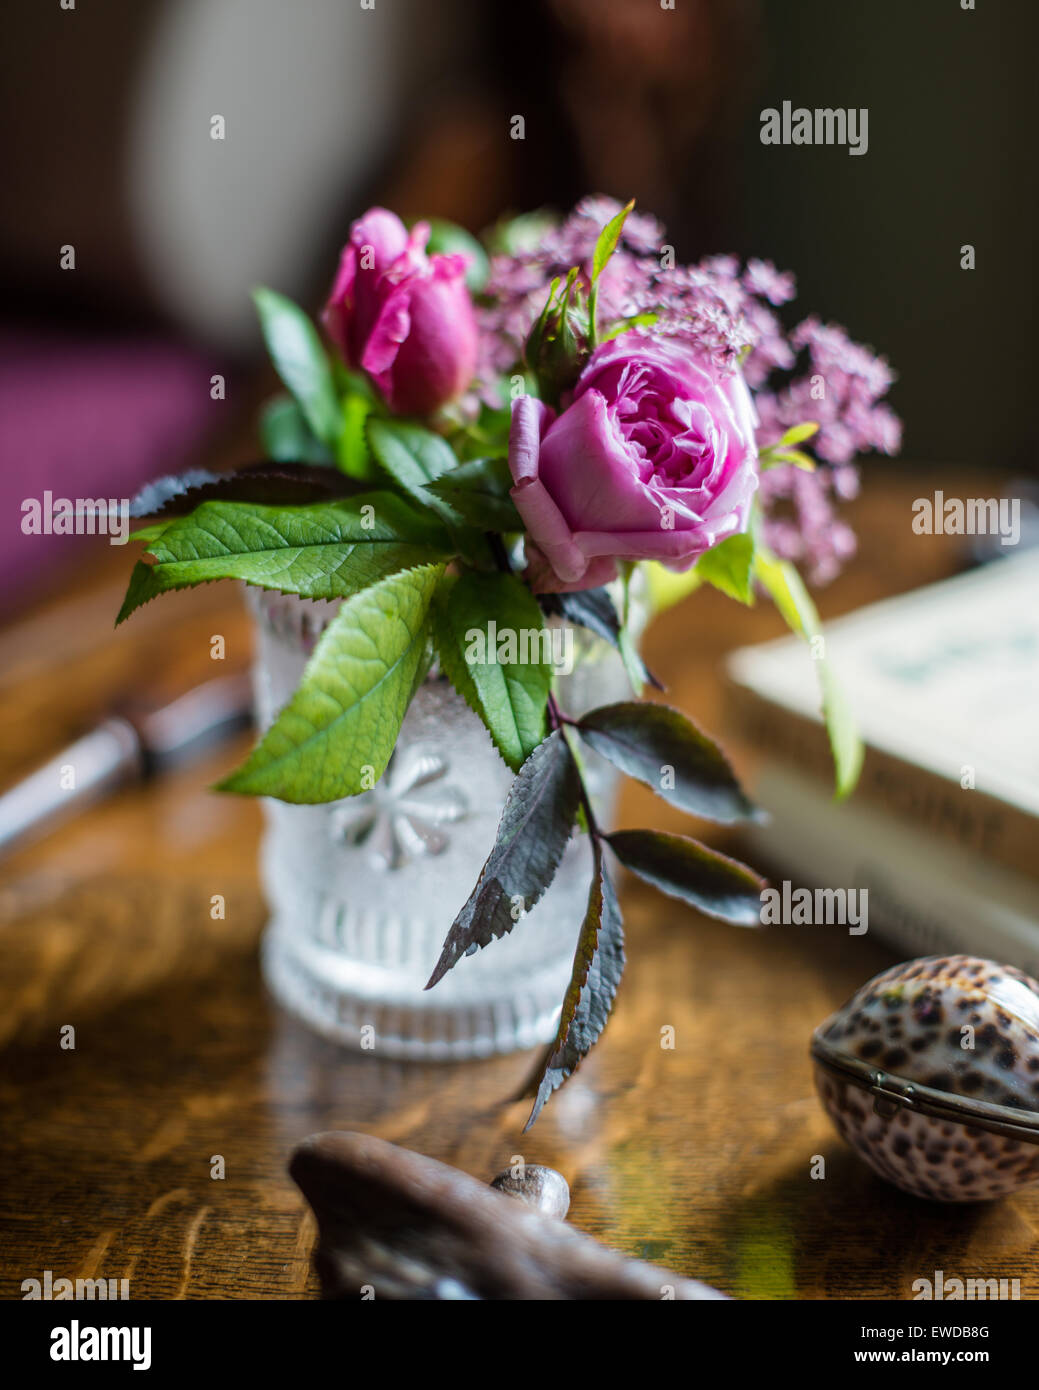 Posy of roses in glass tumbler - Stock Image